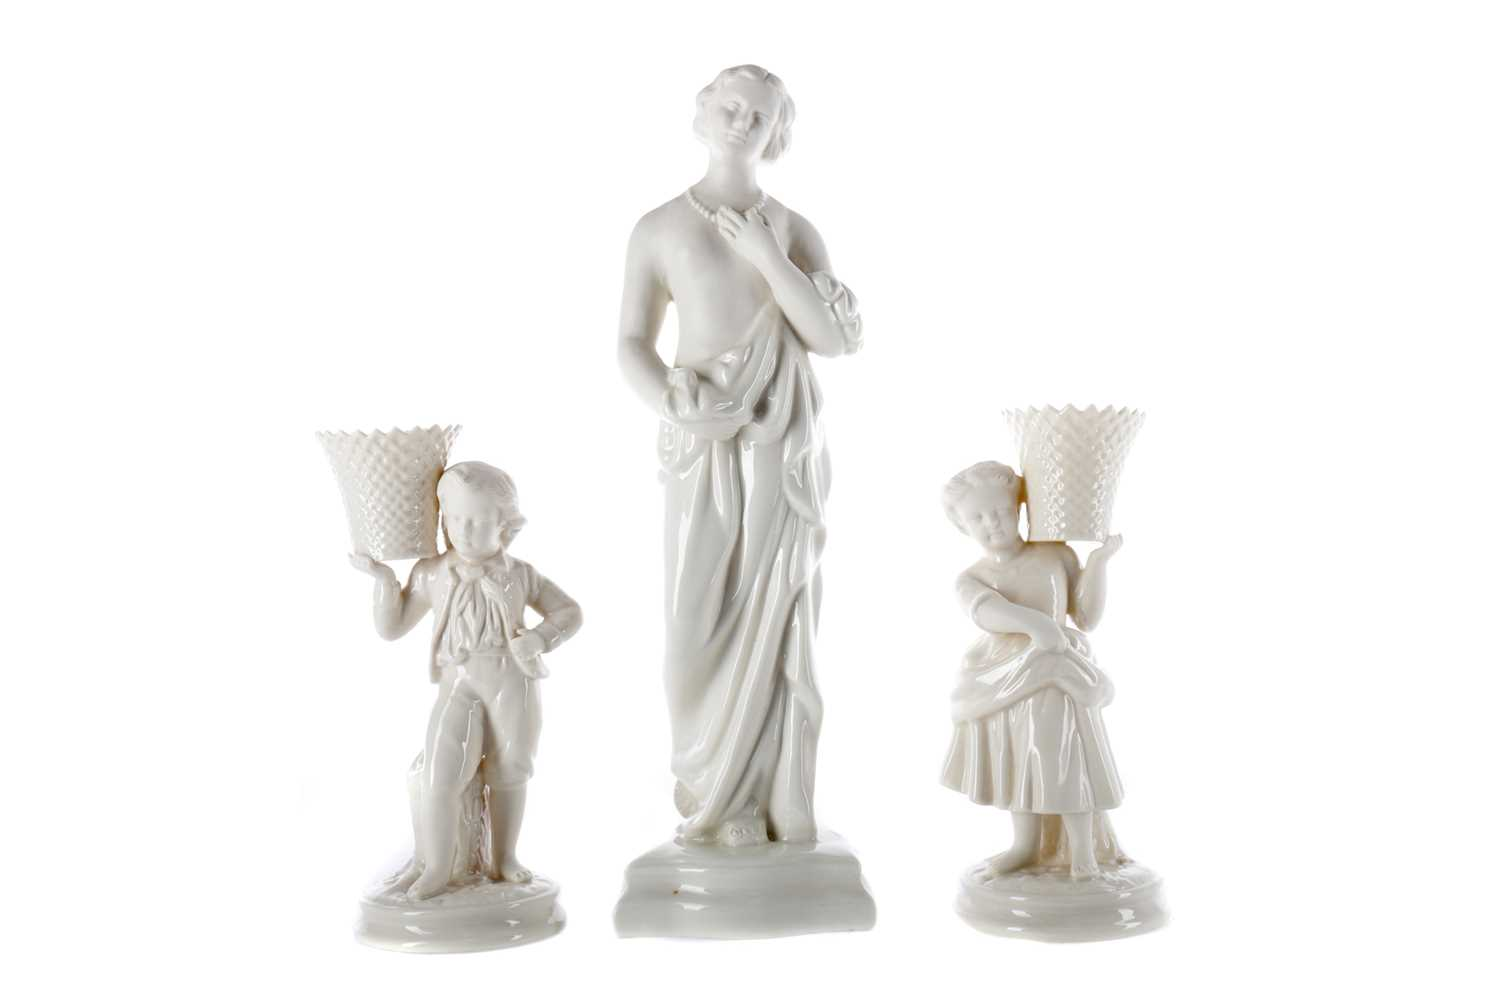 Lot 1102 - A BELLEEK FIGURE OF MEDITATION ALONG WITH A PAIR OF FIGURES